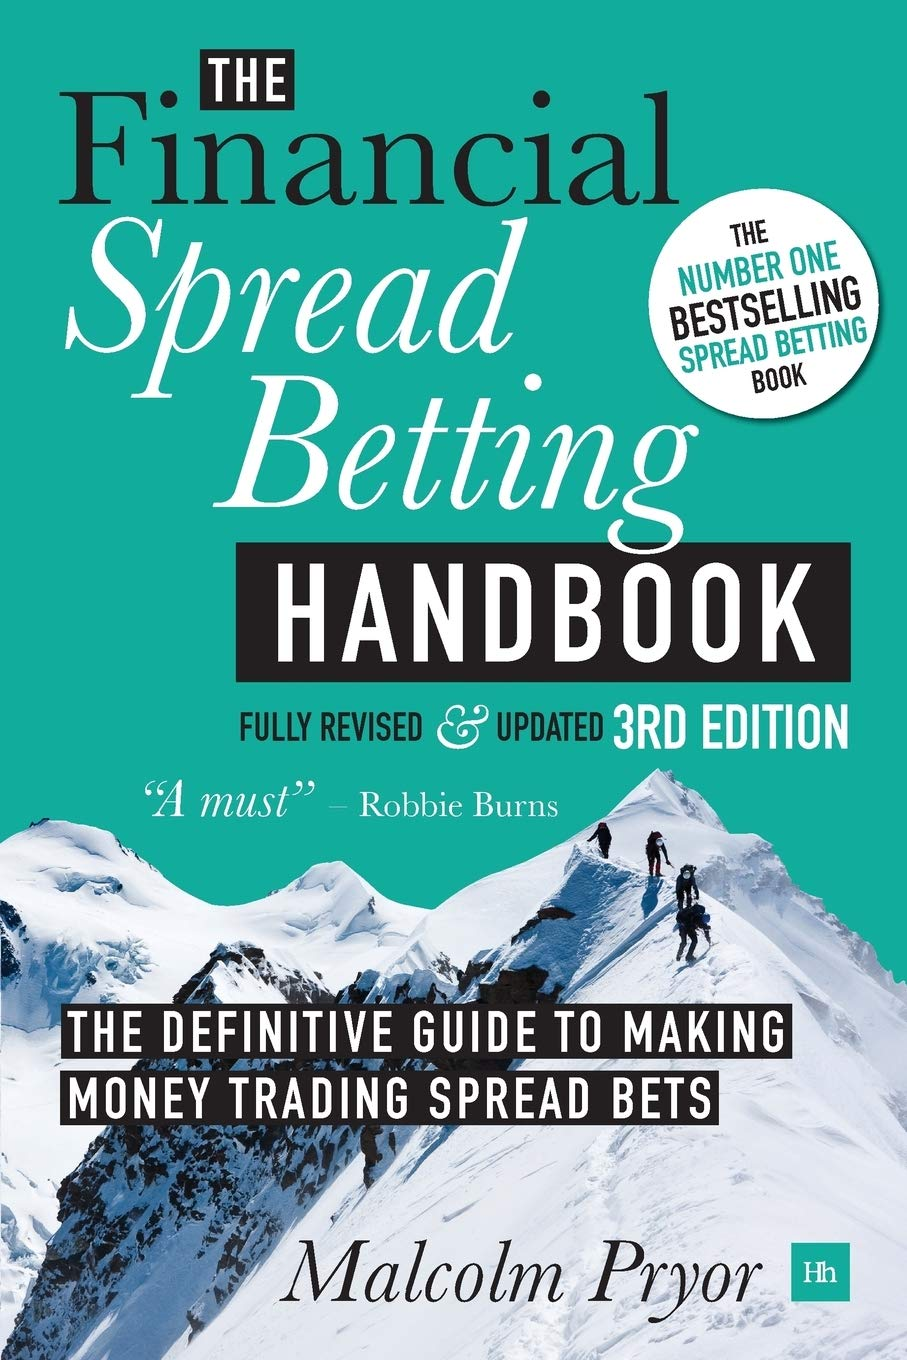 Financial spread betting guide golden nugget casino sports betting online